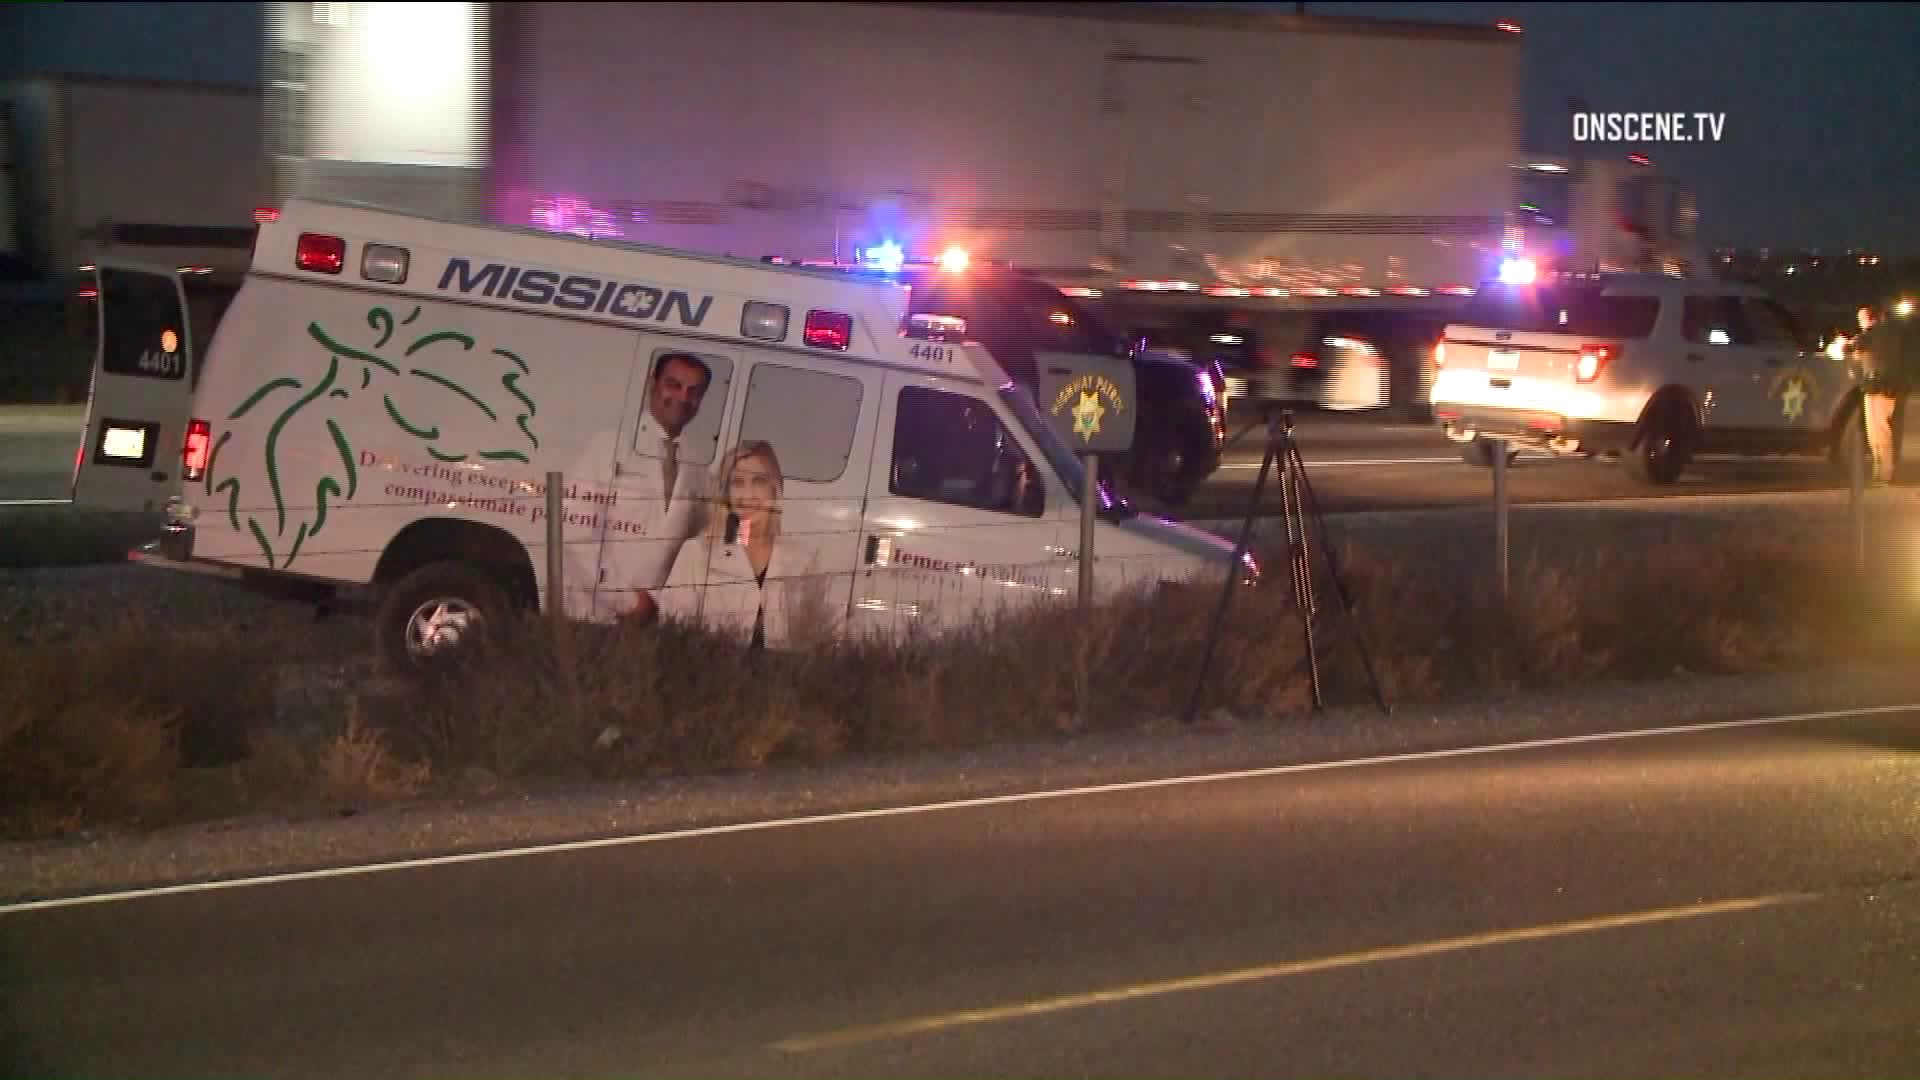 An ambulance is seen after a high-speed chase on Dec. 16, 2018. (Credit: OnSceneTV)